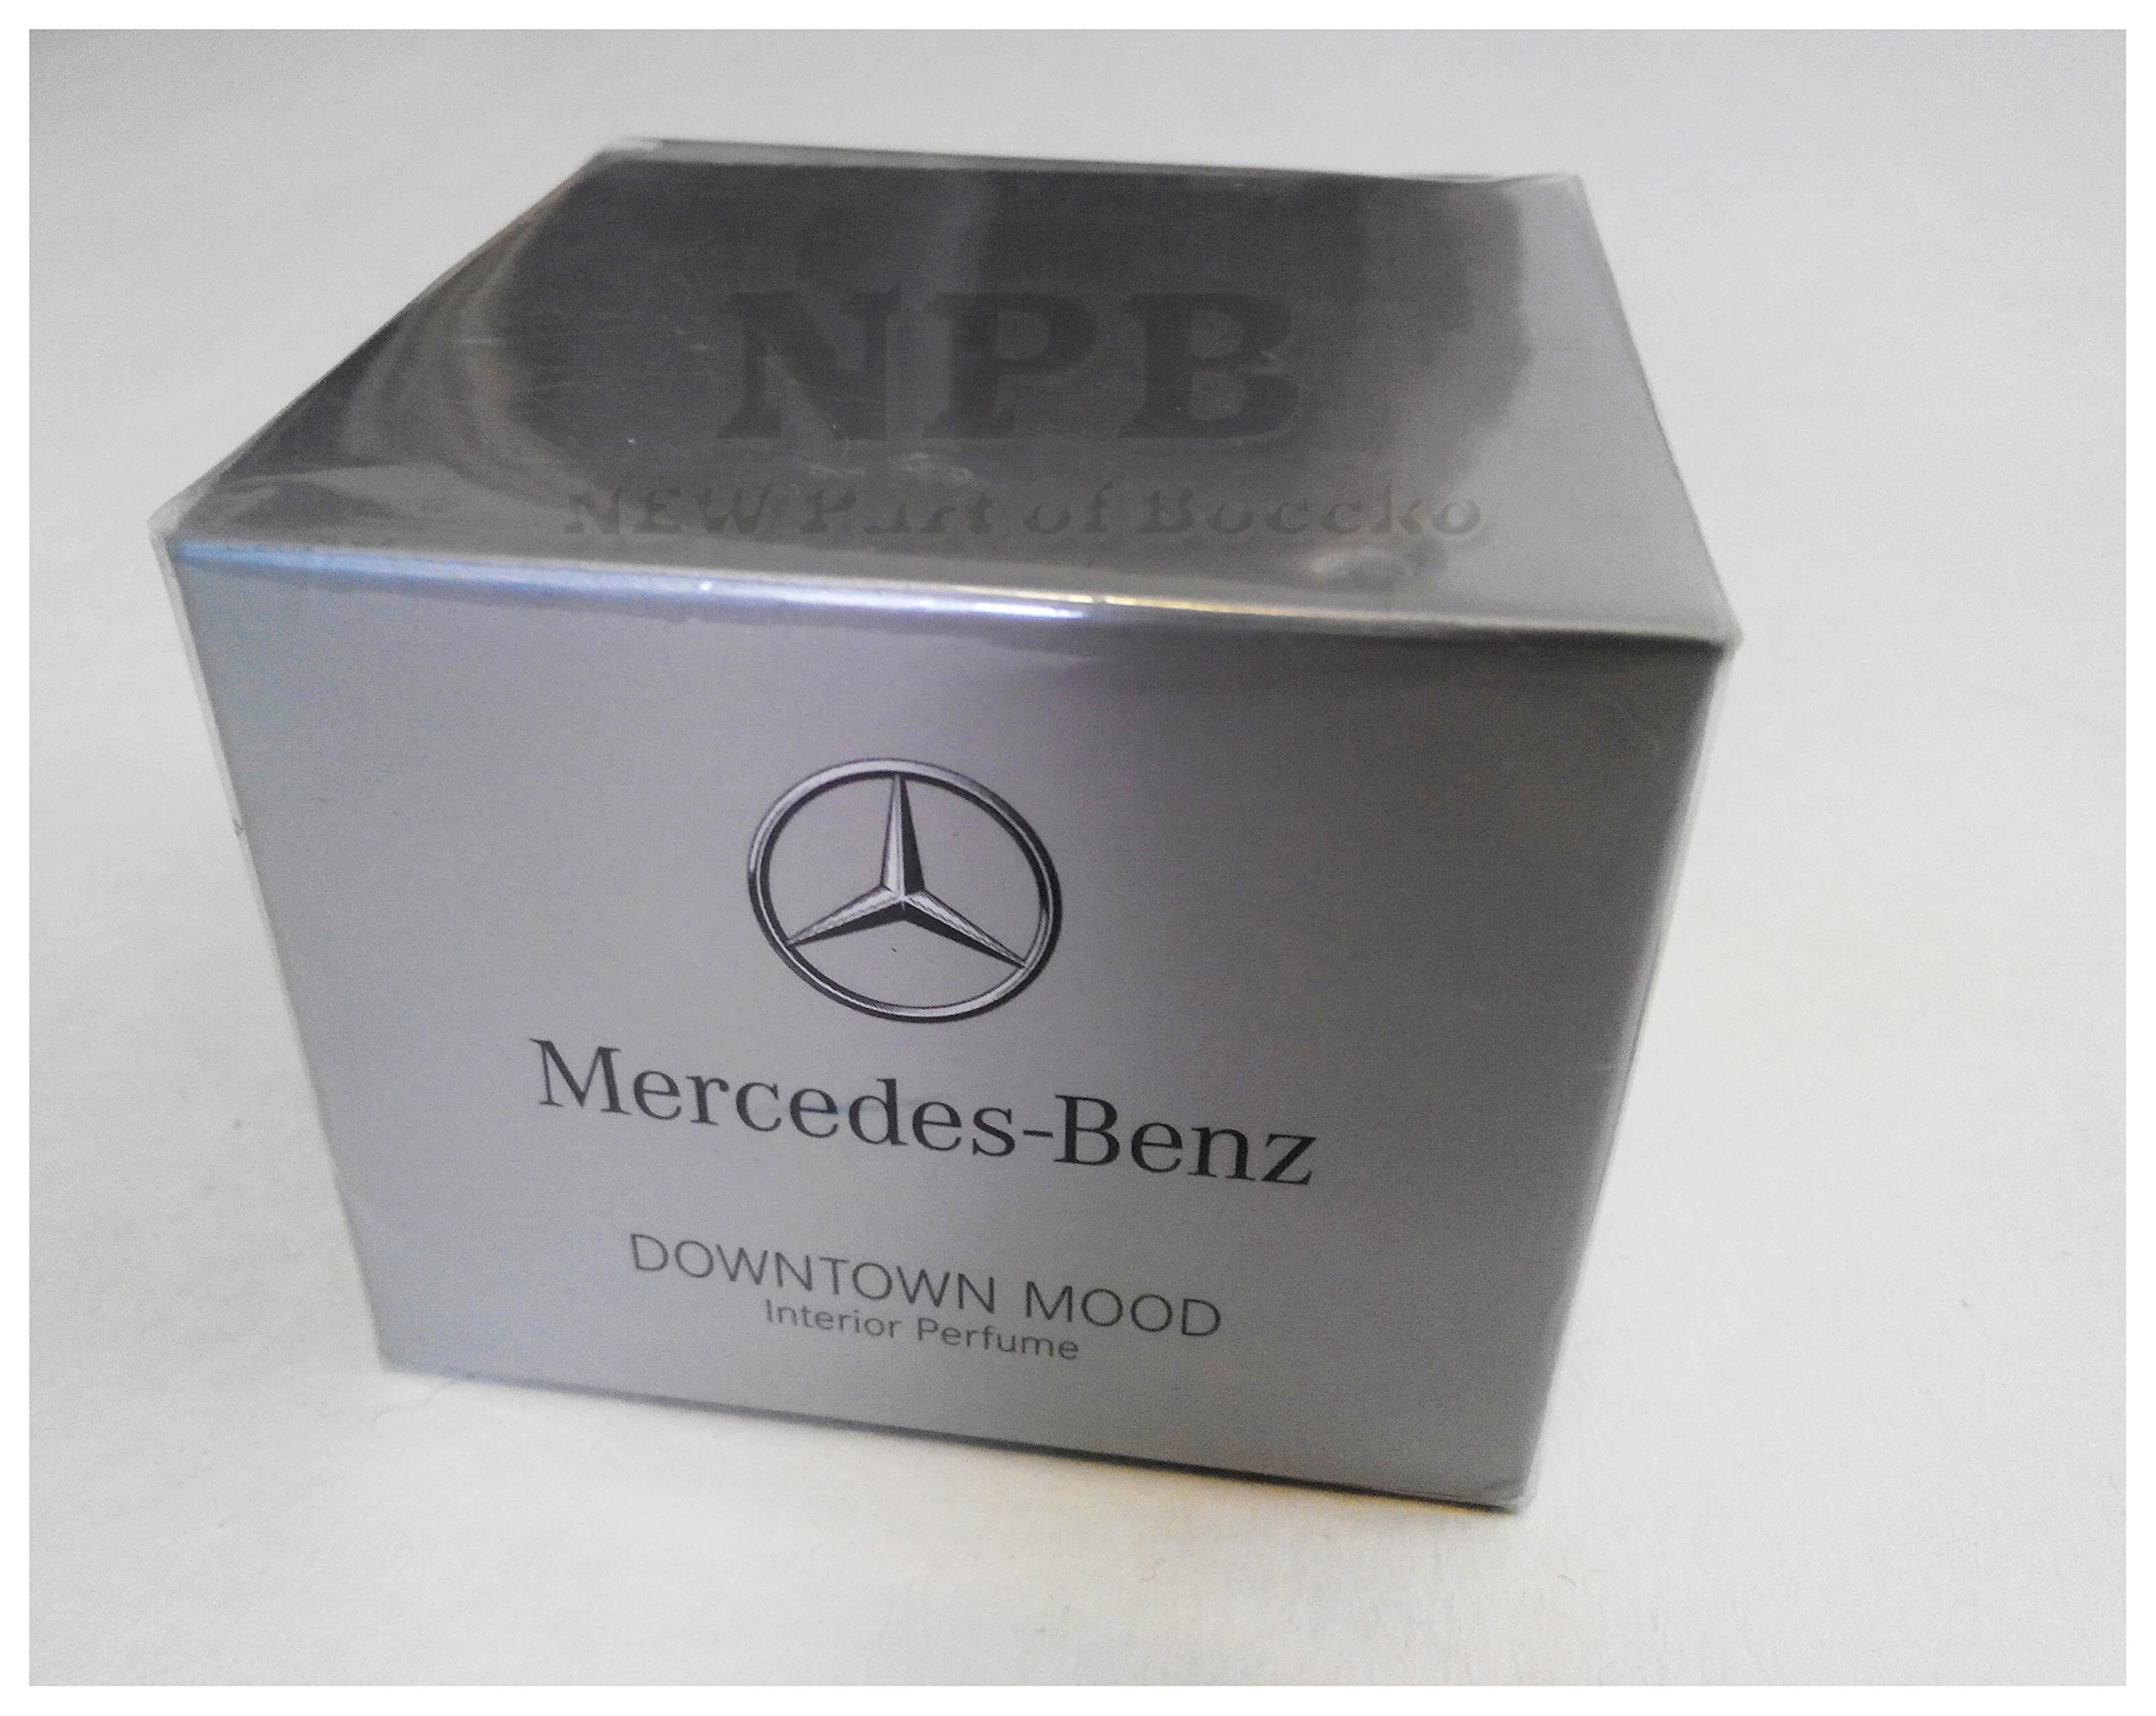 Mercedes Benz Air-balance OEM Flacon perfume atomiser DOWNTOWN MOOD by Mercedes Benz